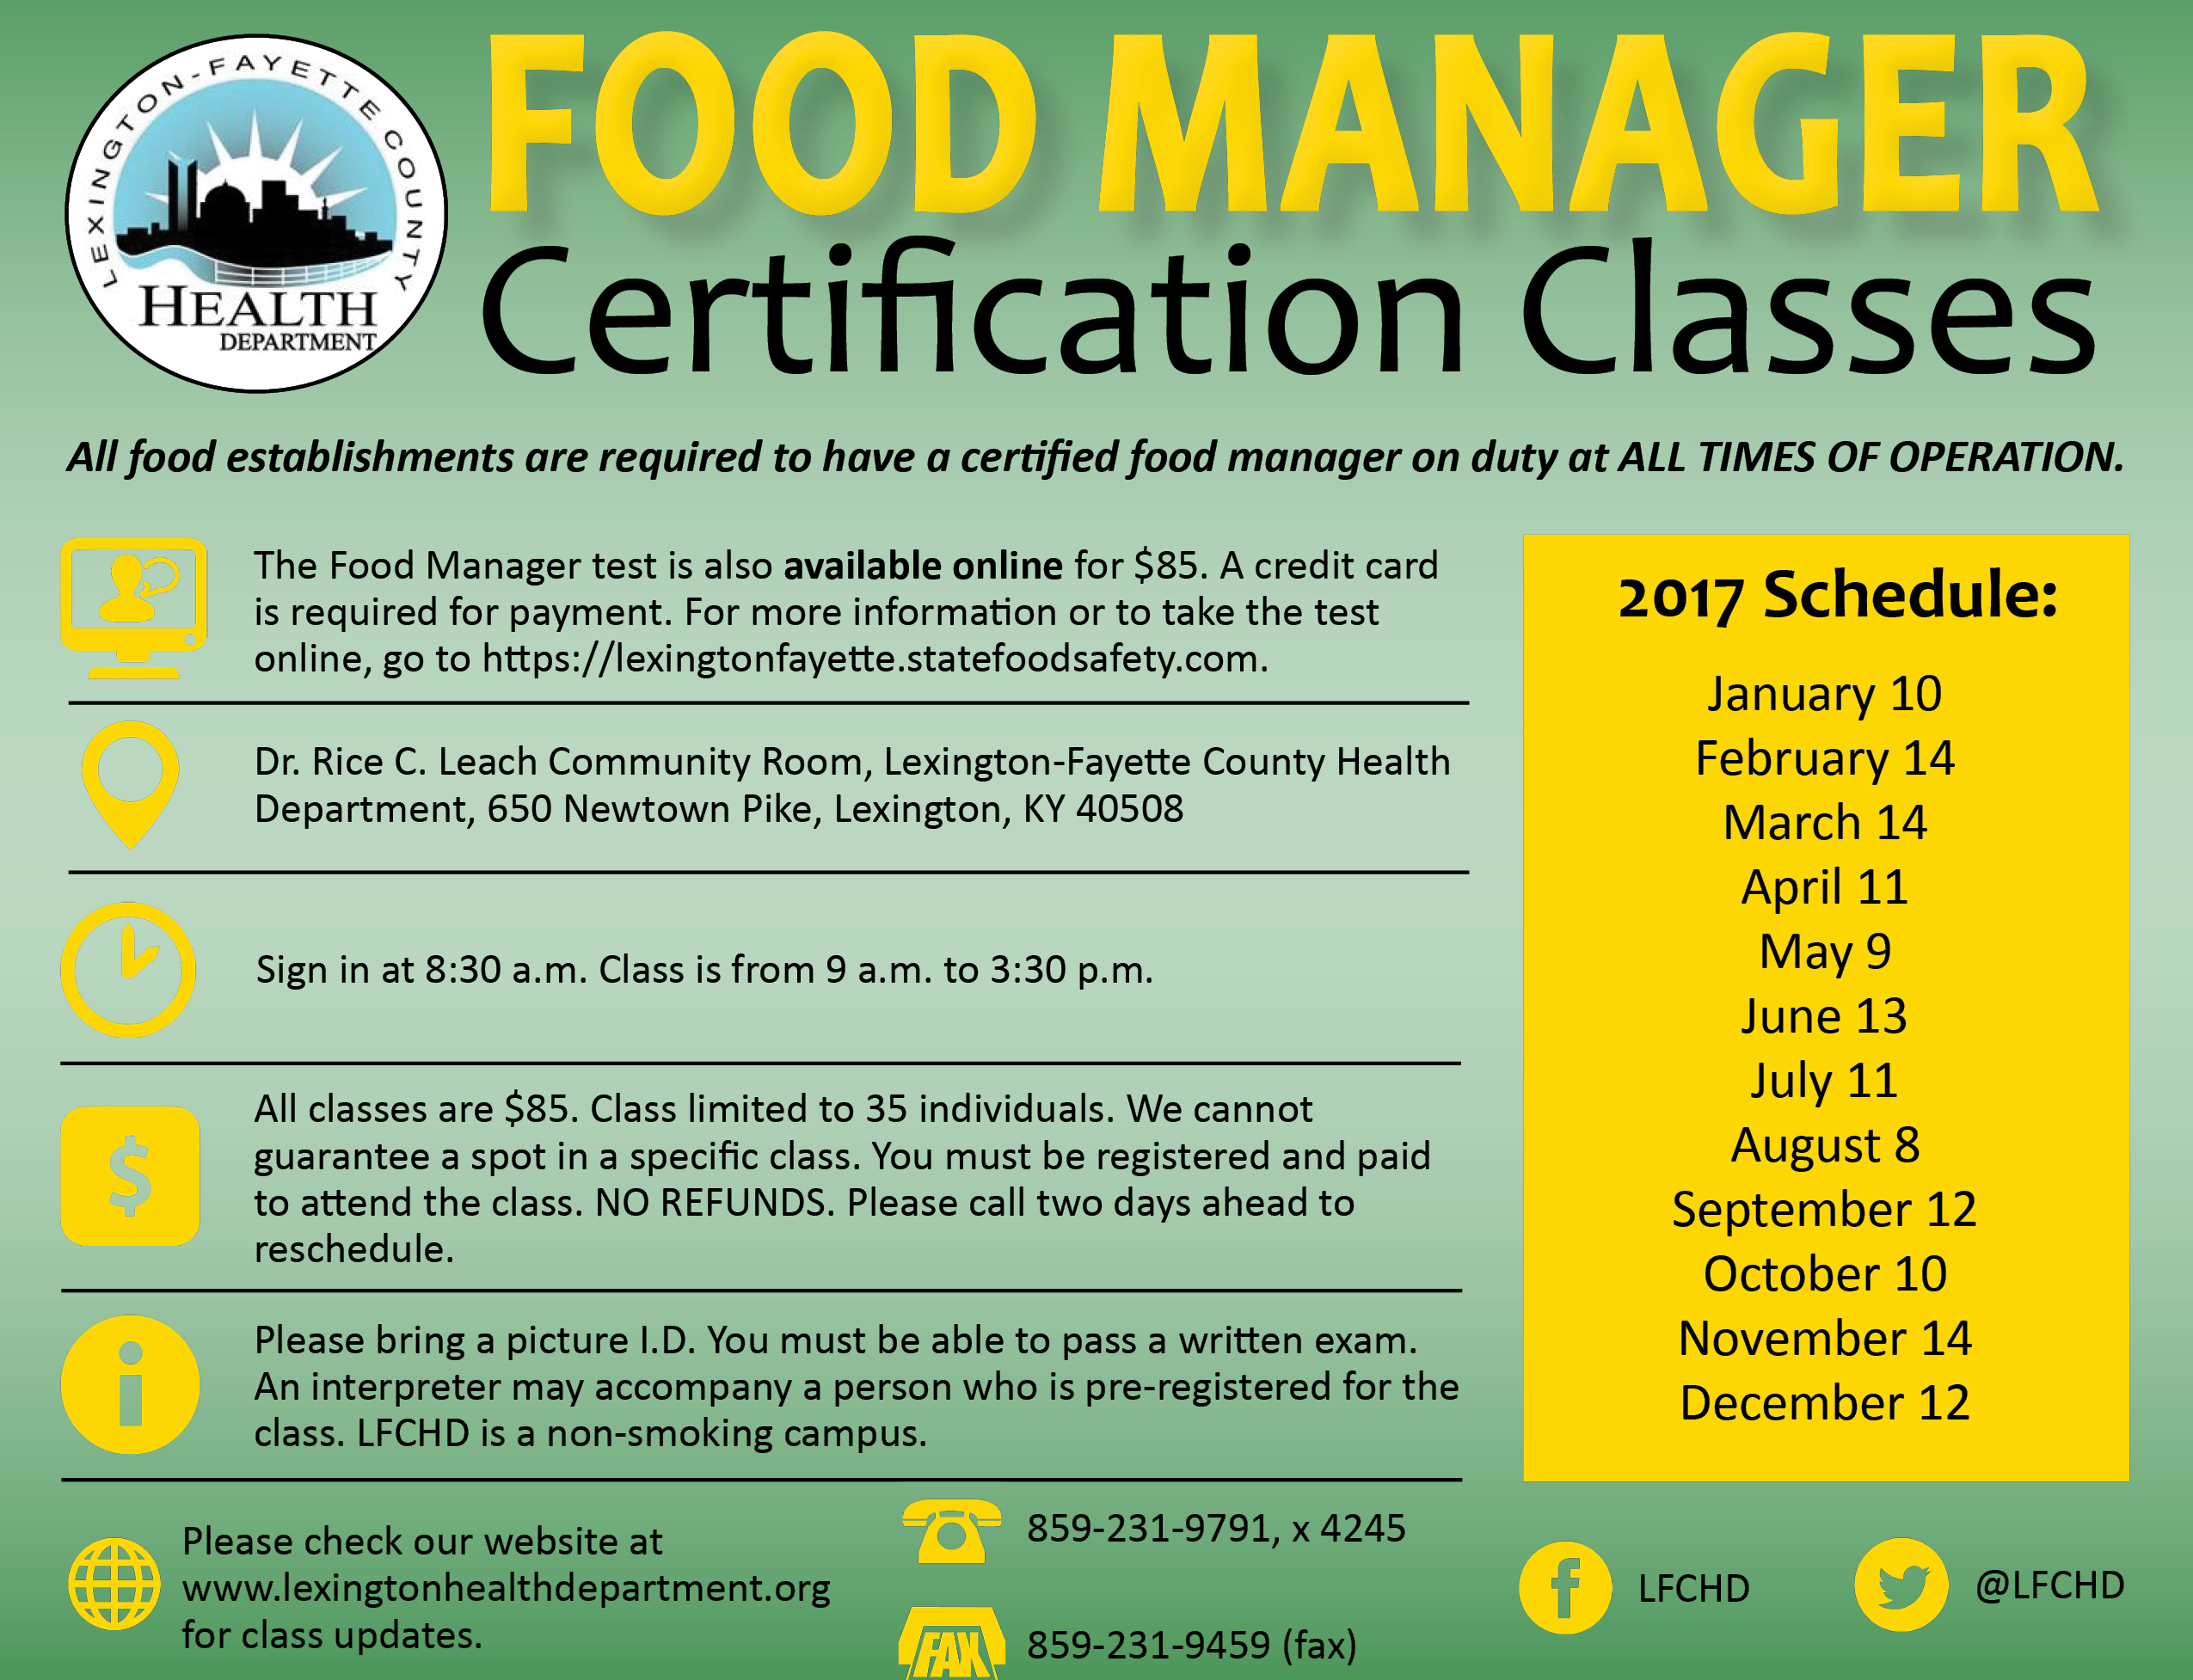 Food Manager Certification Class